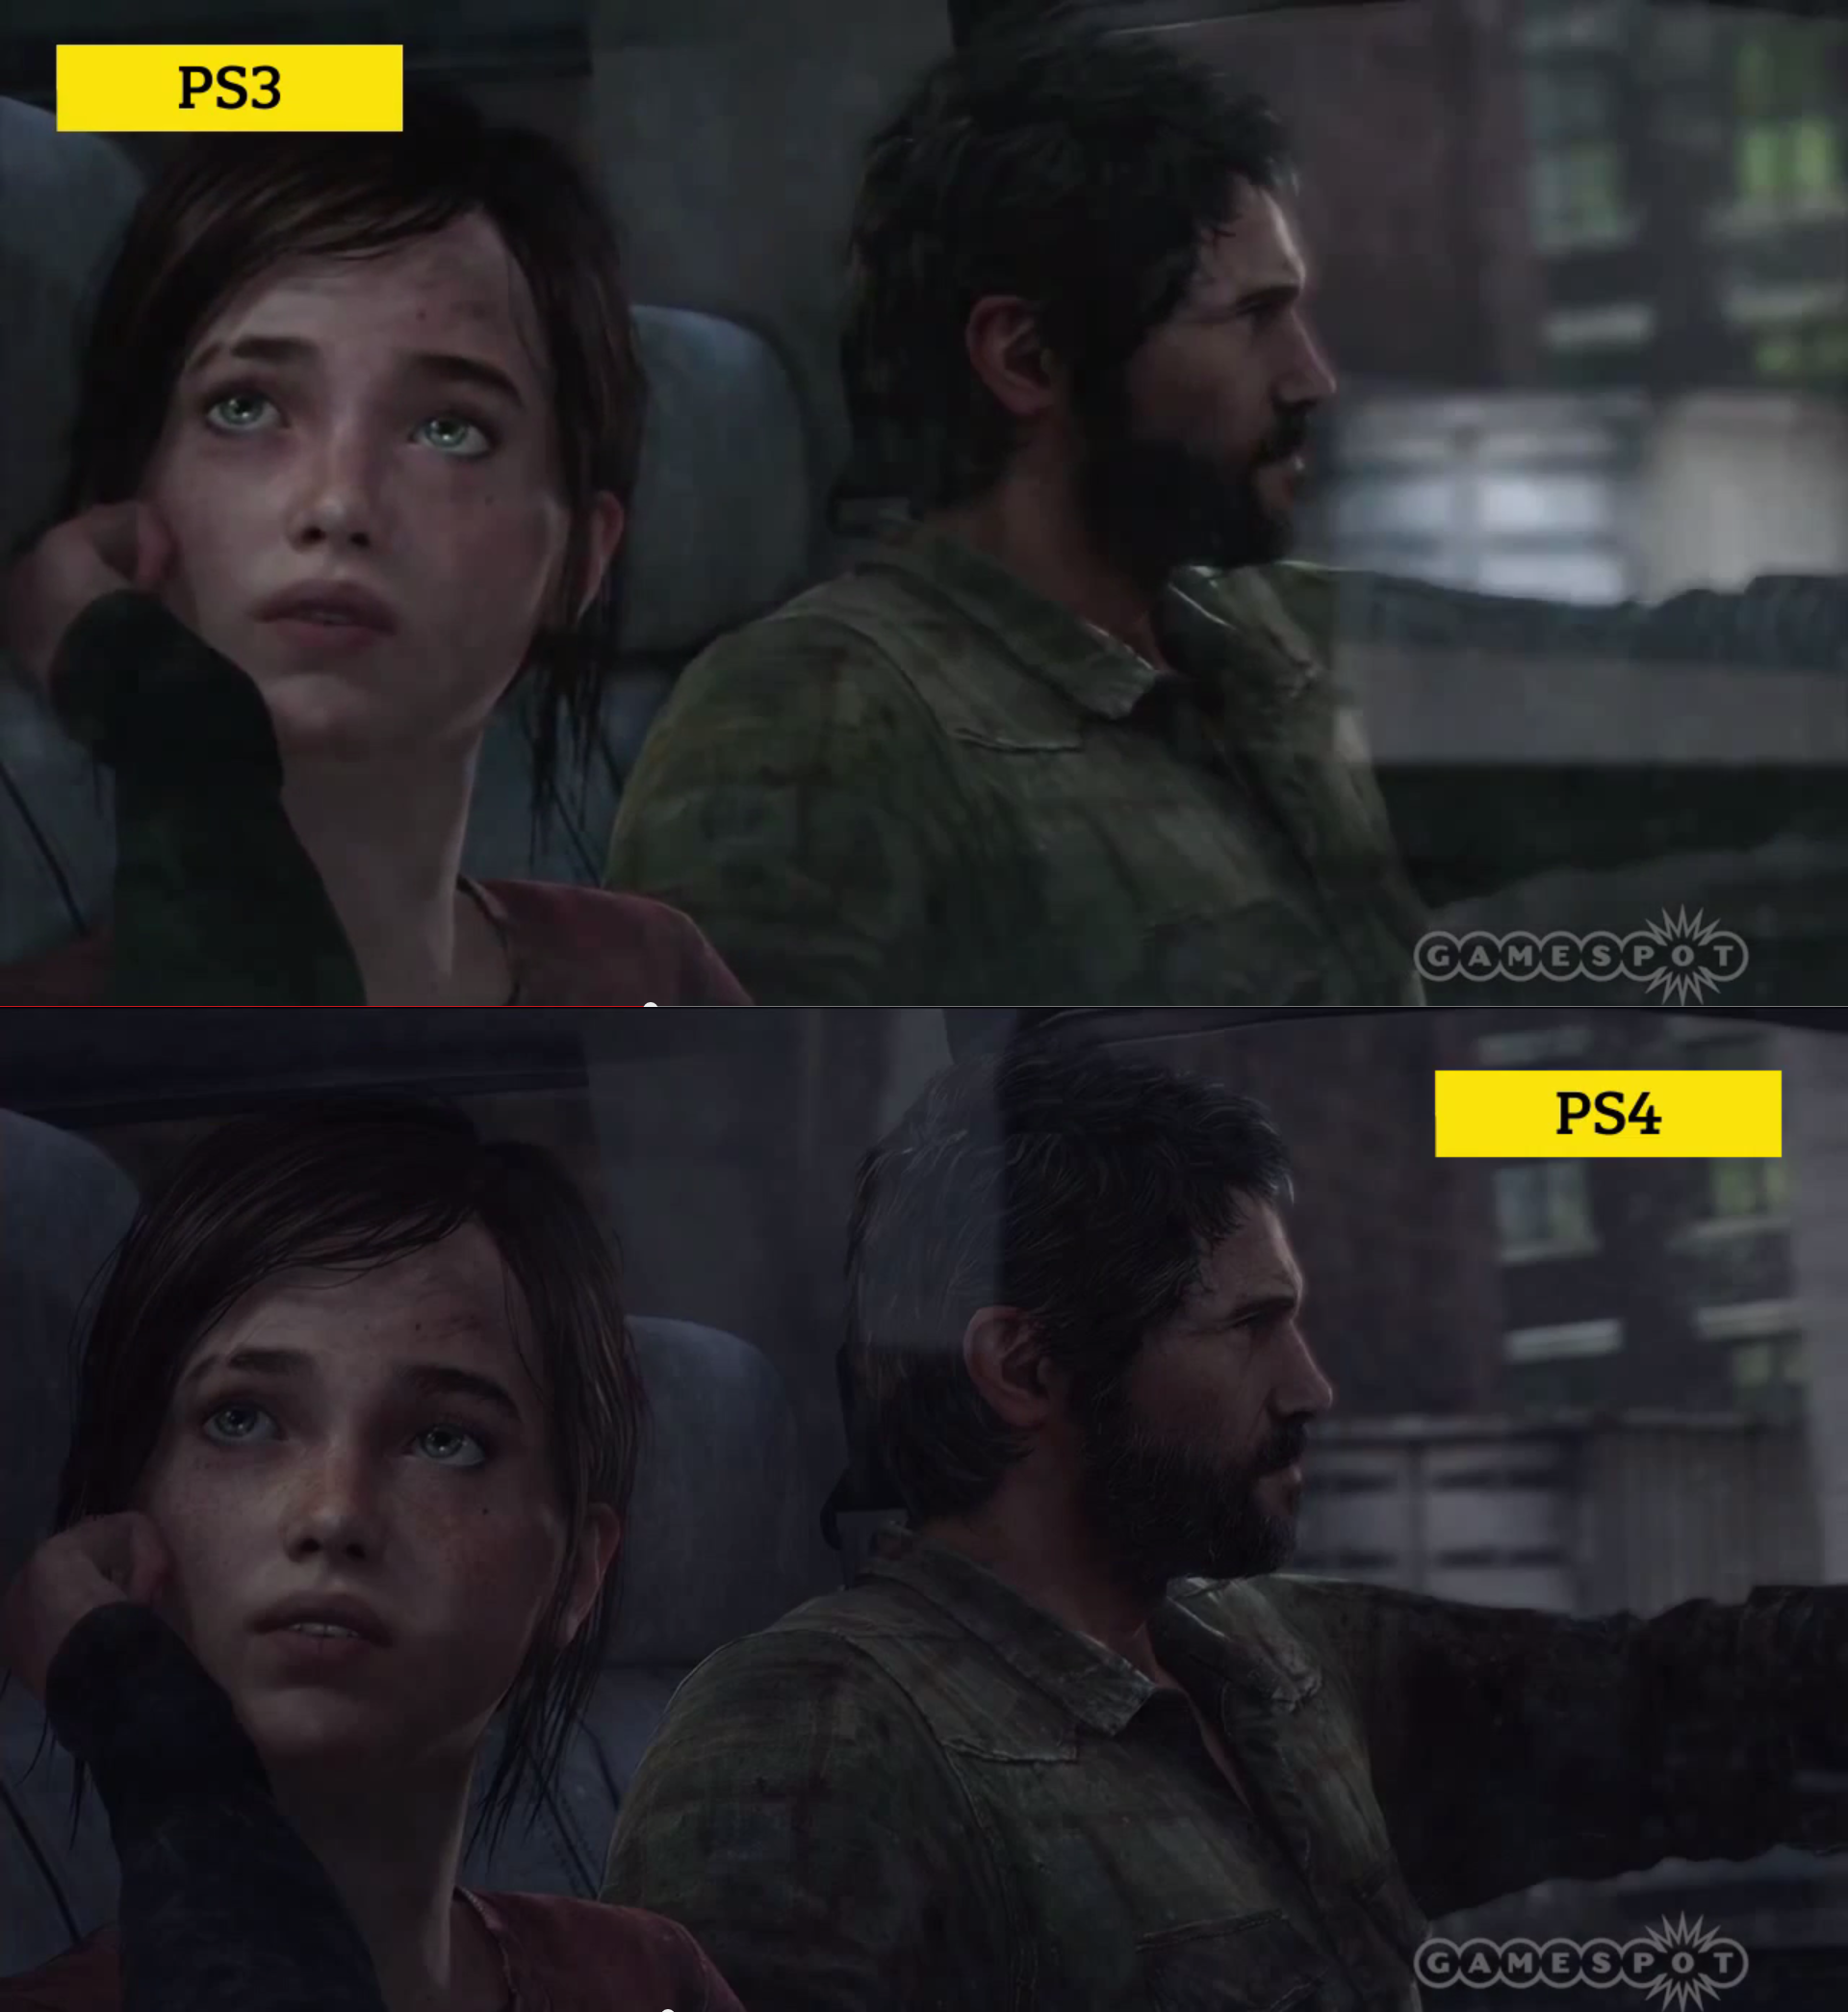 The Last of Us Grafikvergleich PS4 vs. PS3